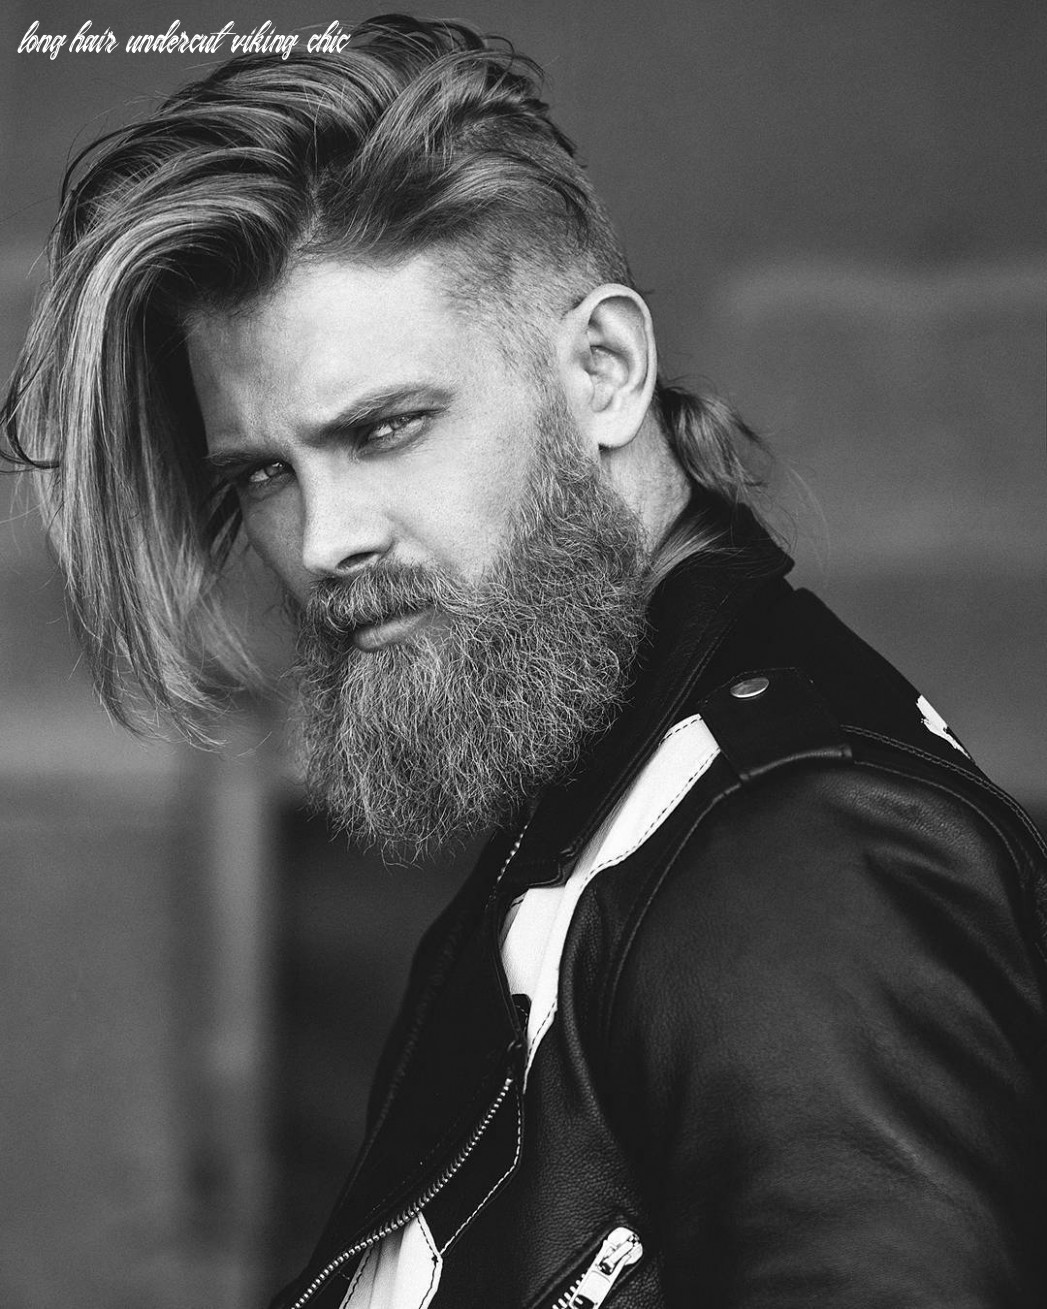 9 best viking hairstyles for the rugged man (9 update) long hair undercut viking chic